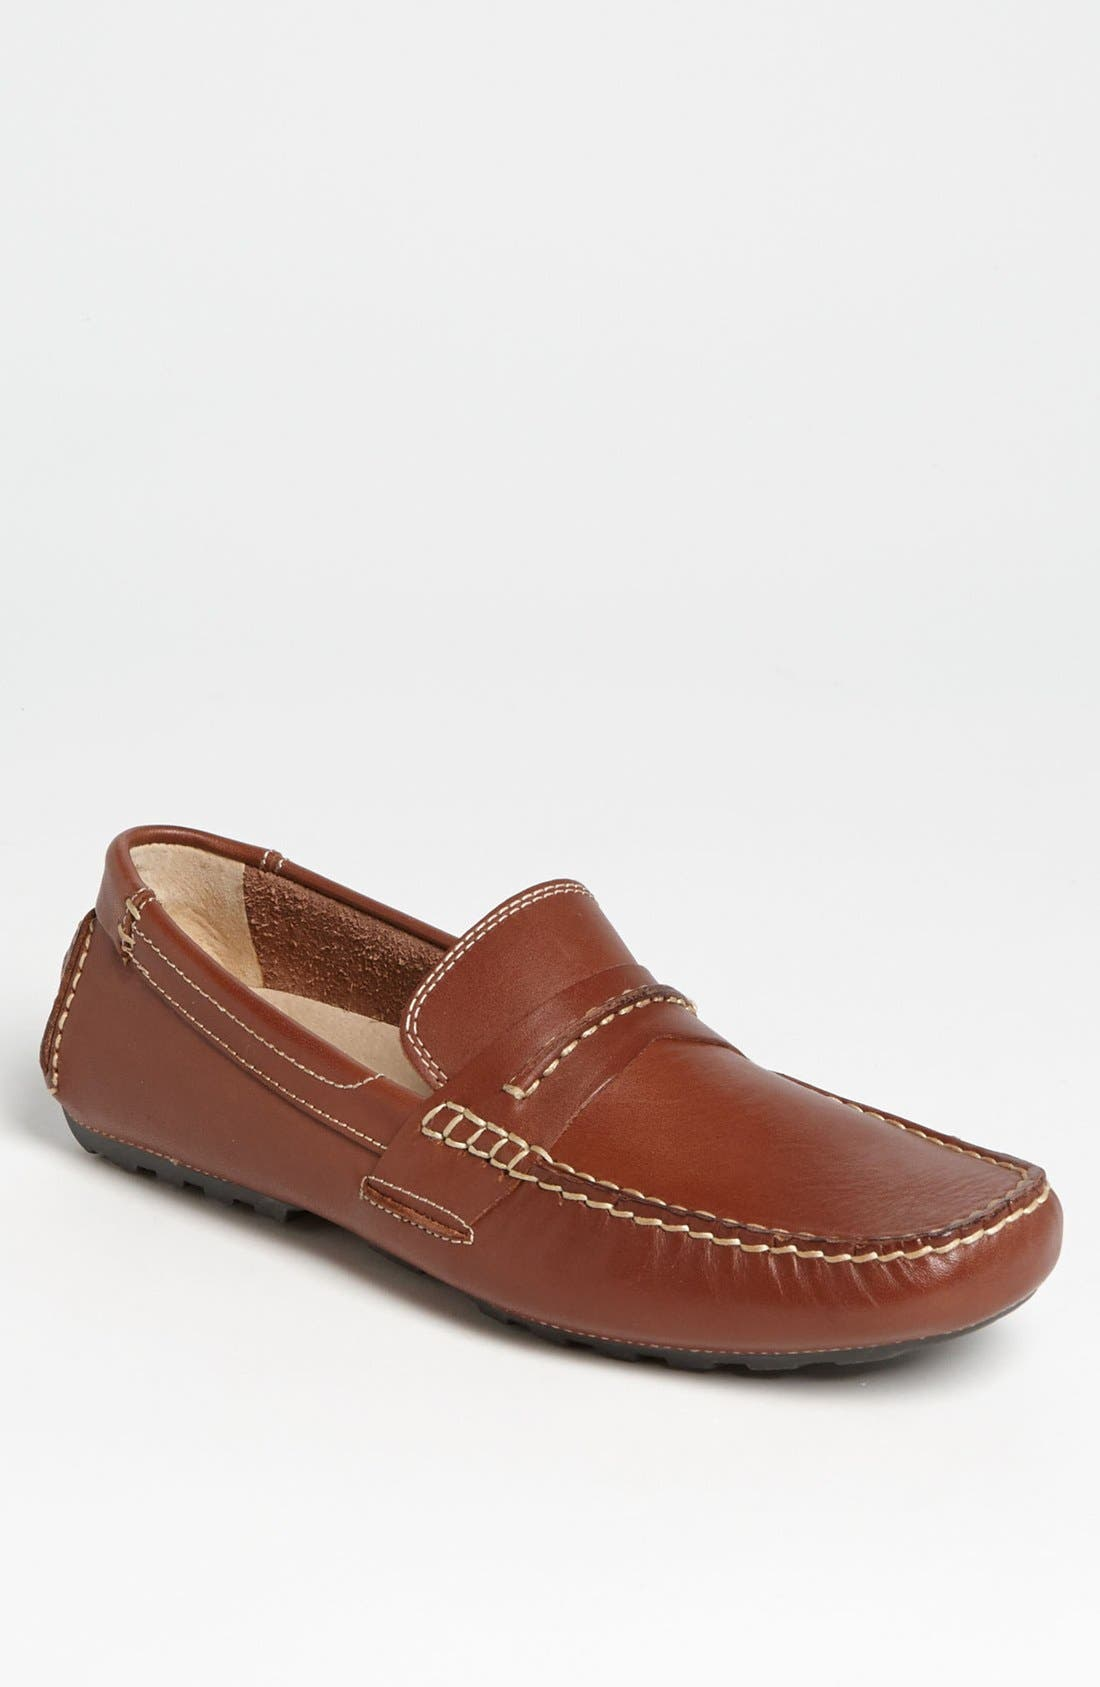 Alternate Image 1 Selected - Florsheim 'Roadster' Driving Shoe